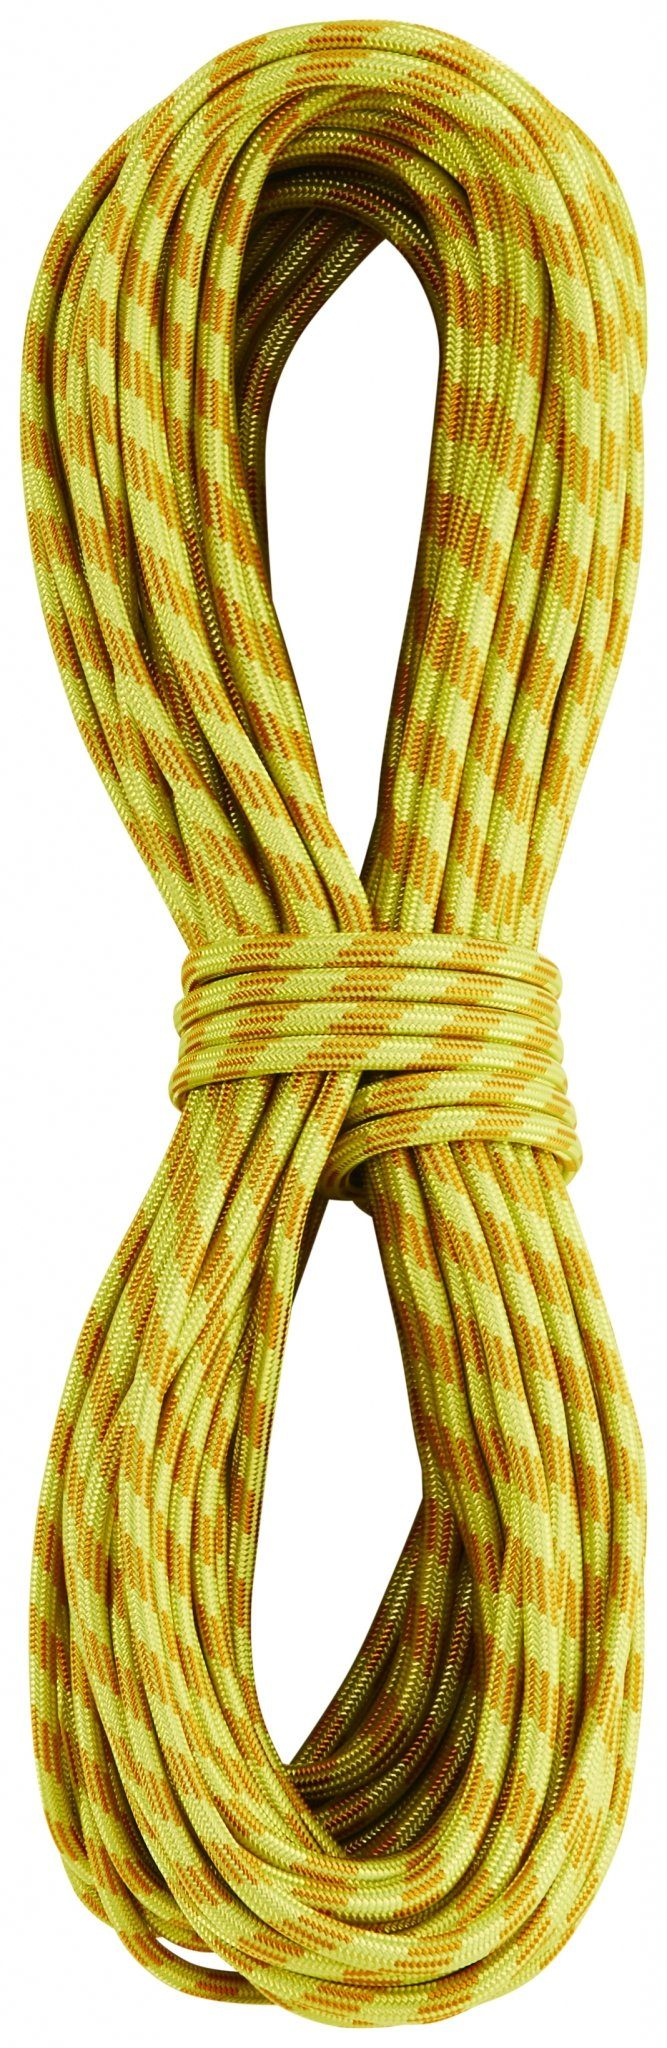 Edelrid Kletterseil »Confidence Rope 8,0mm 40m«